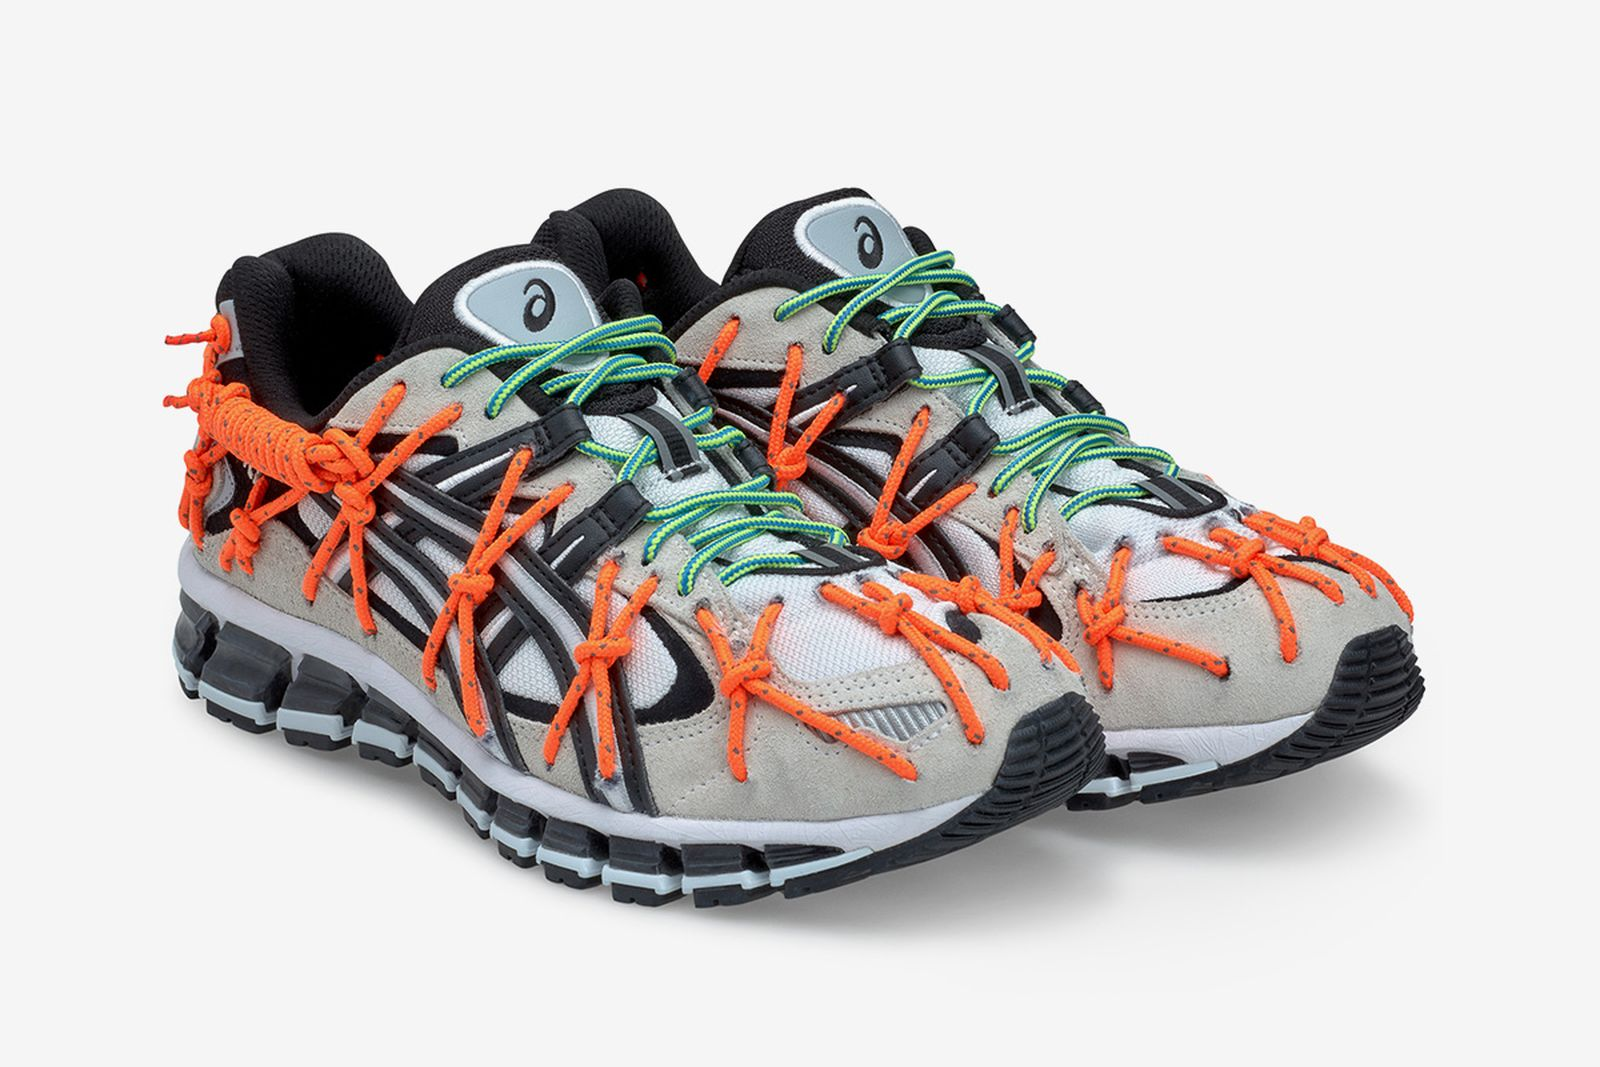 rokh-asics-gel-kayano-5-360-release-date-price-12